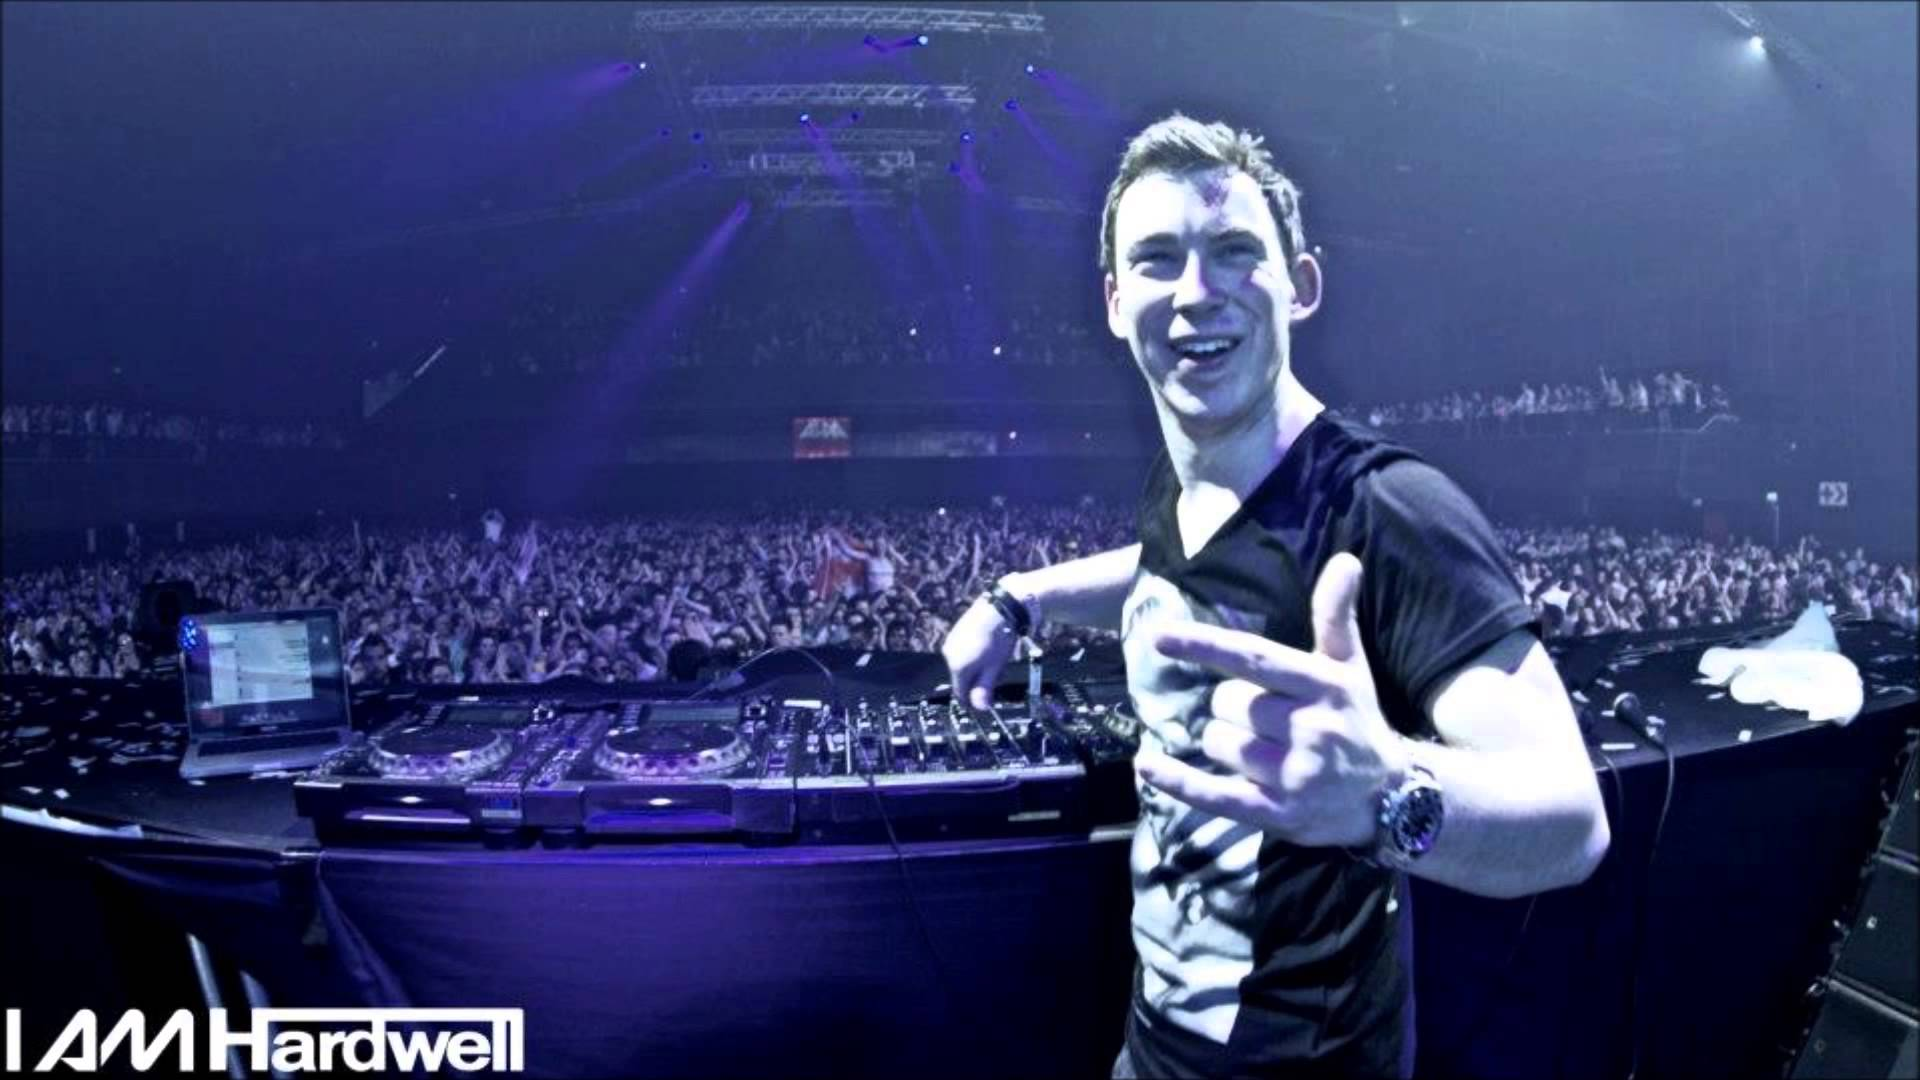 Dj hardwell wallpapers wallpaper cave i am hardwell wallpaper altavistaventures Image collections